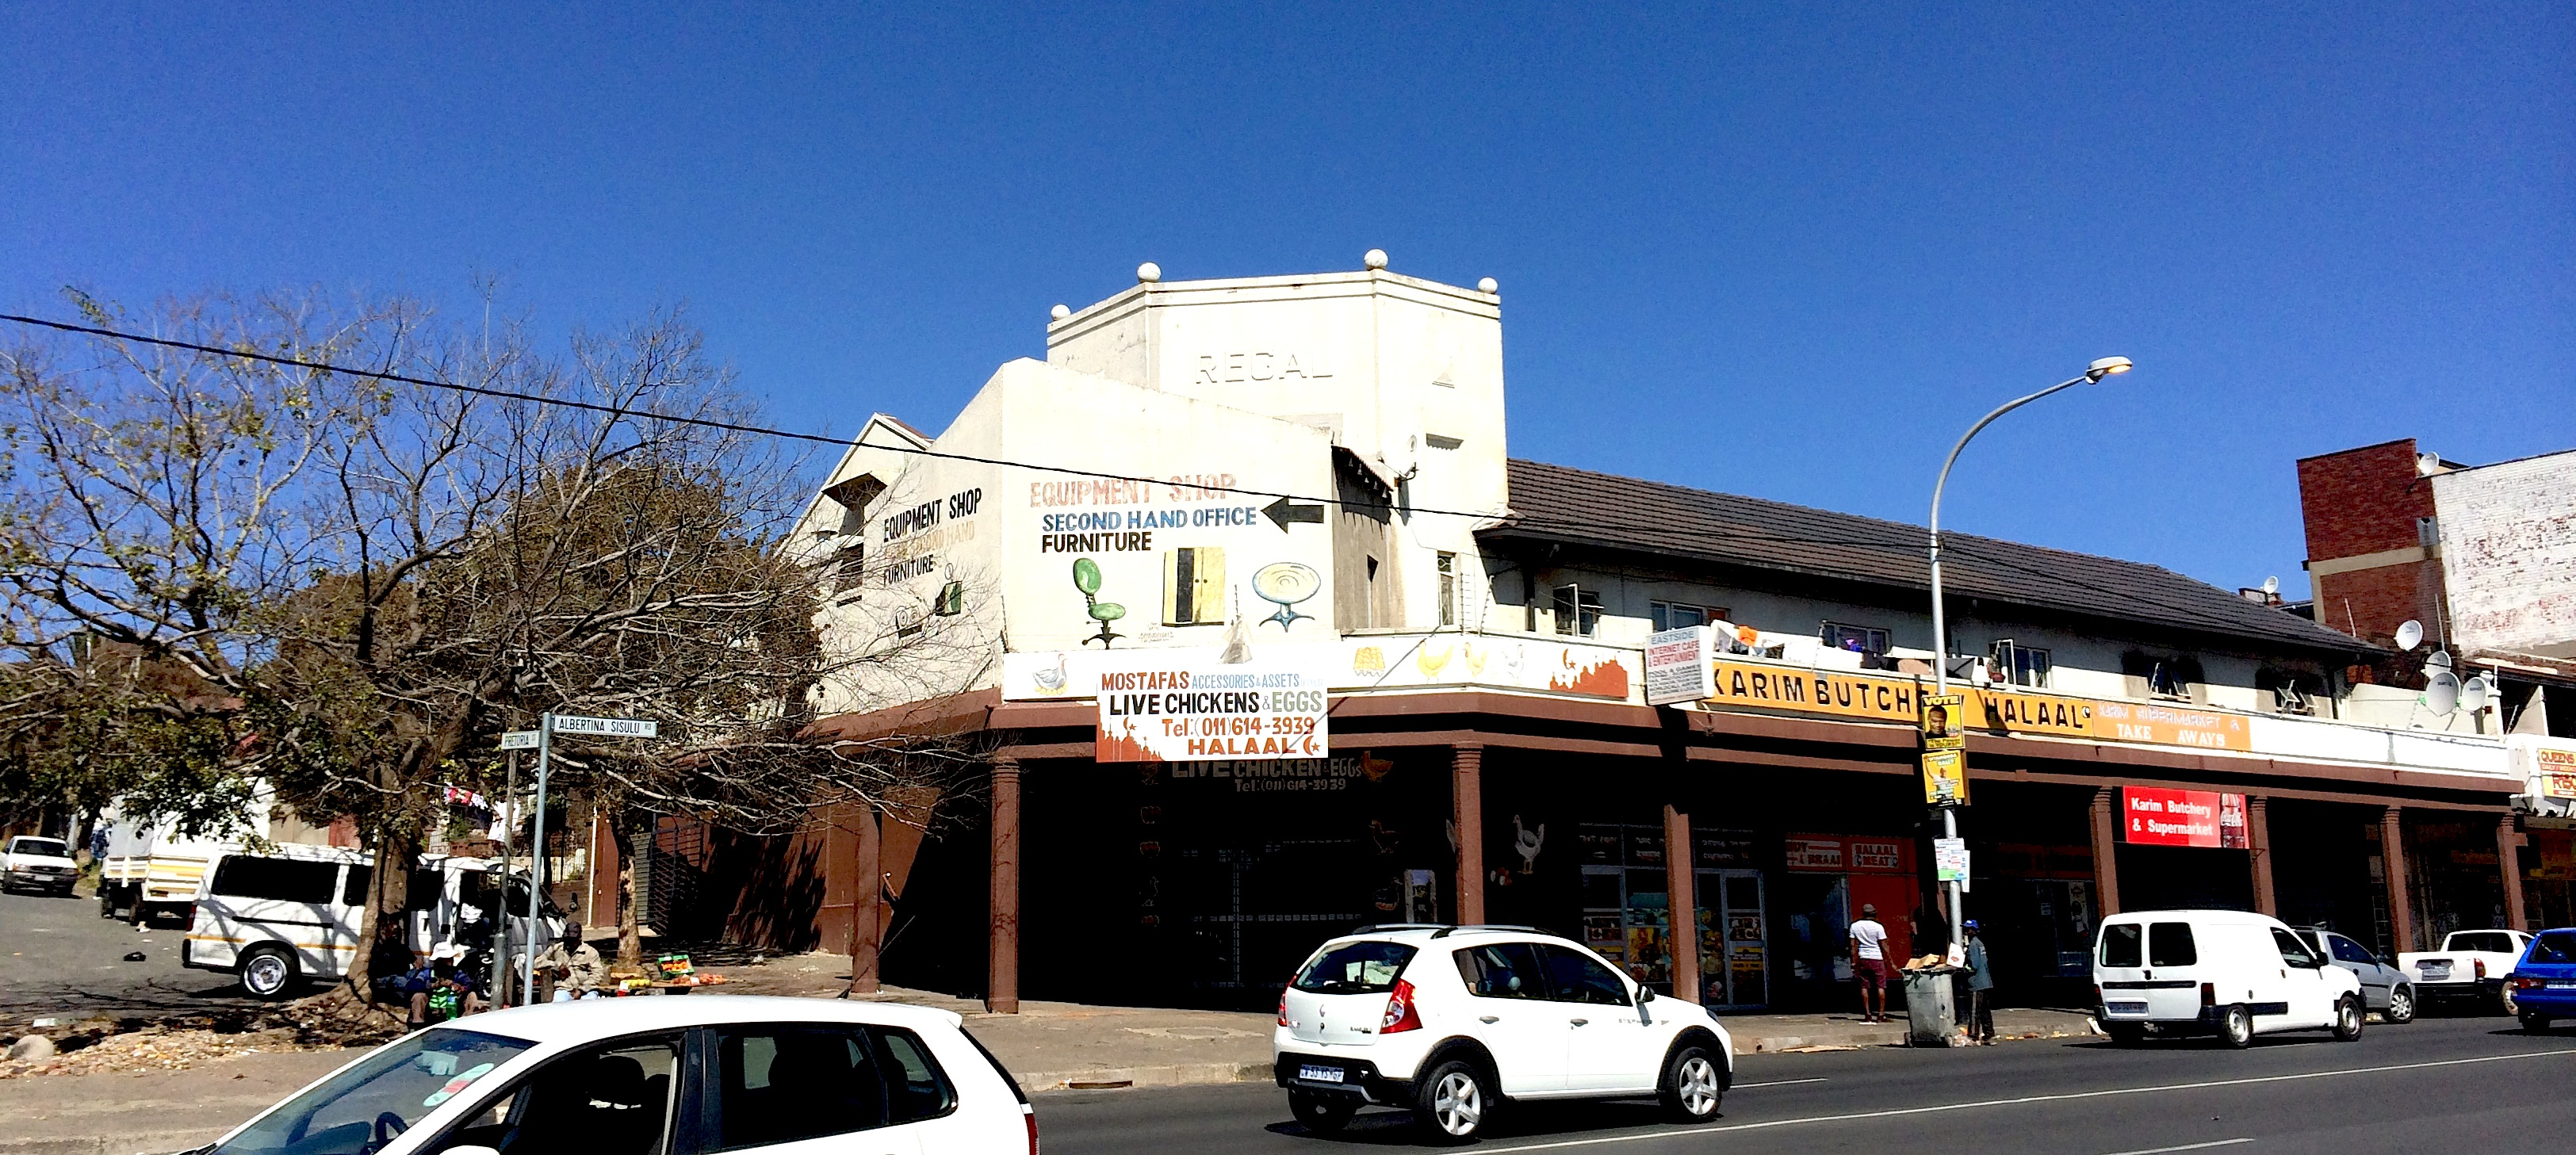 Regal Avalon 12 >> Theatres in early Johannesburg | Johannesburg 1912 - Suburb by suburb research